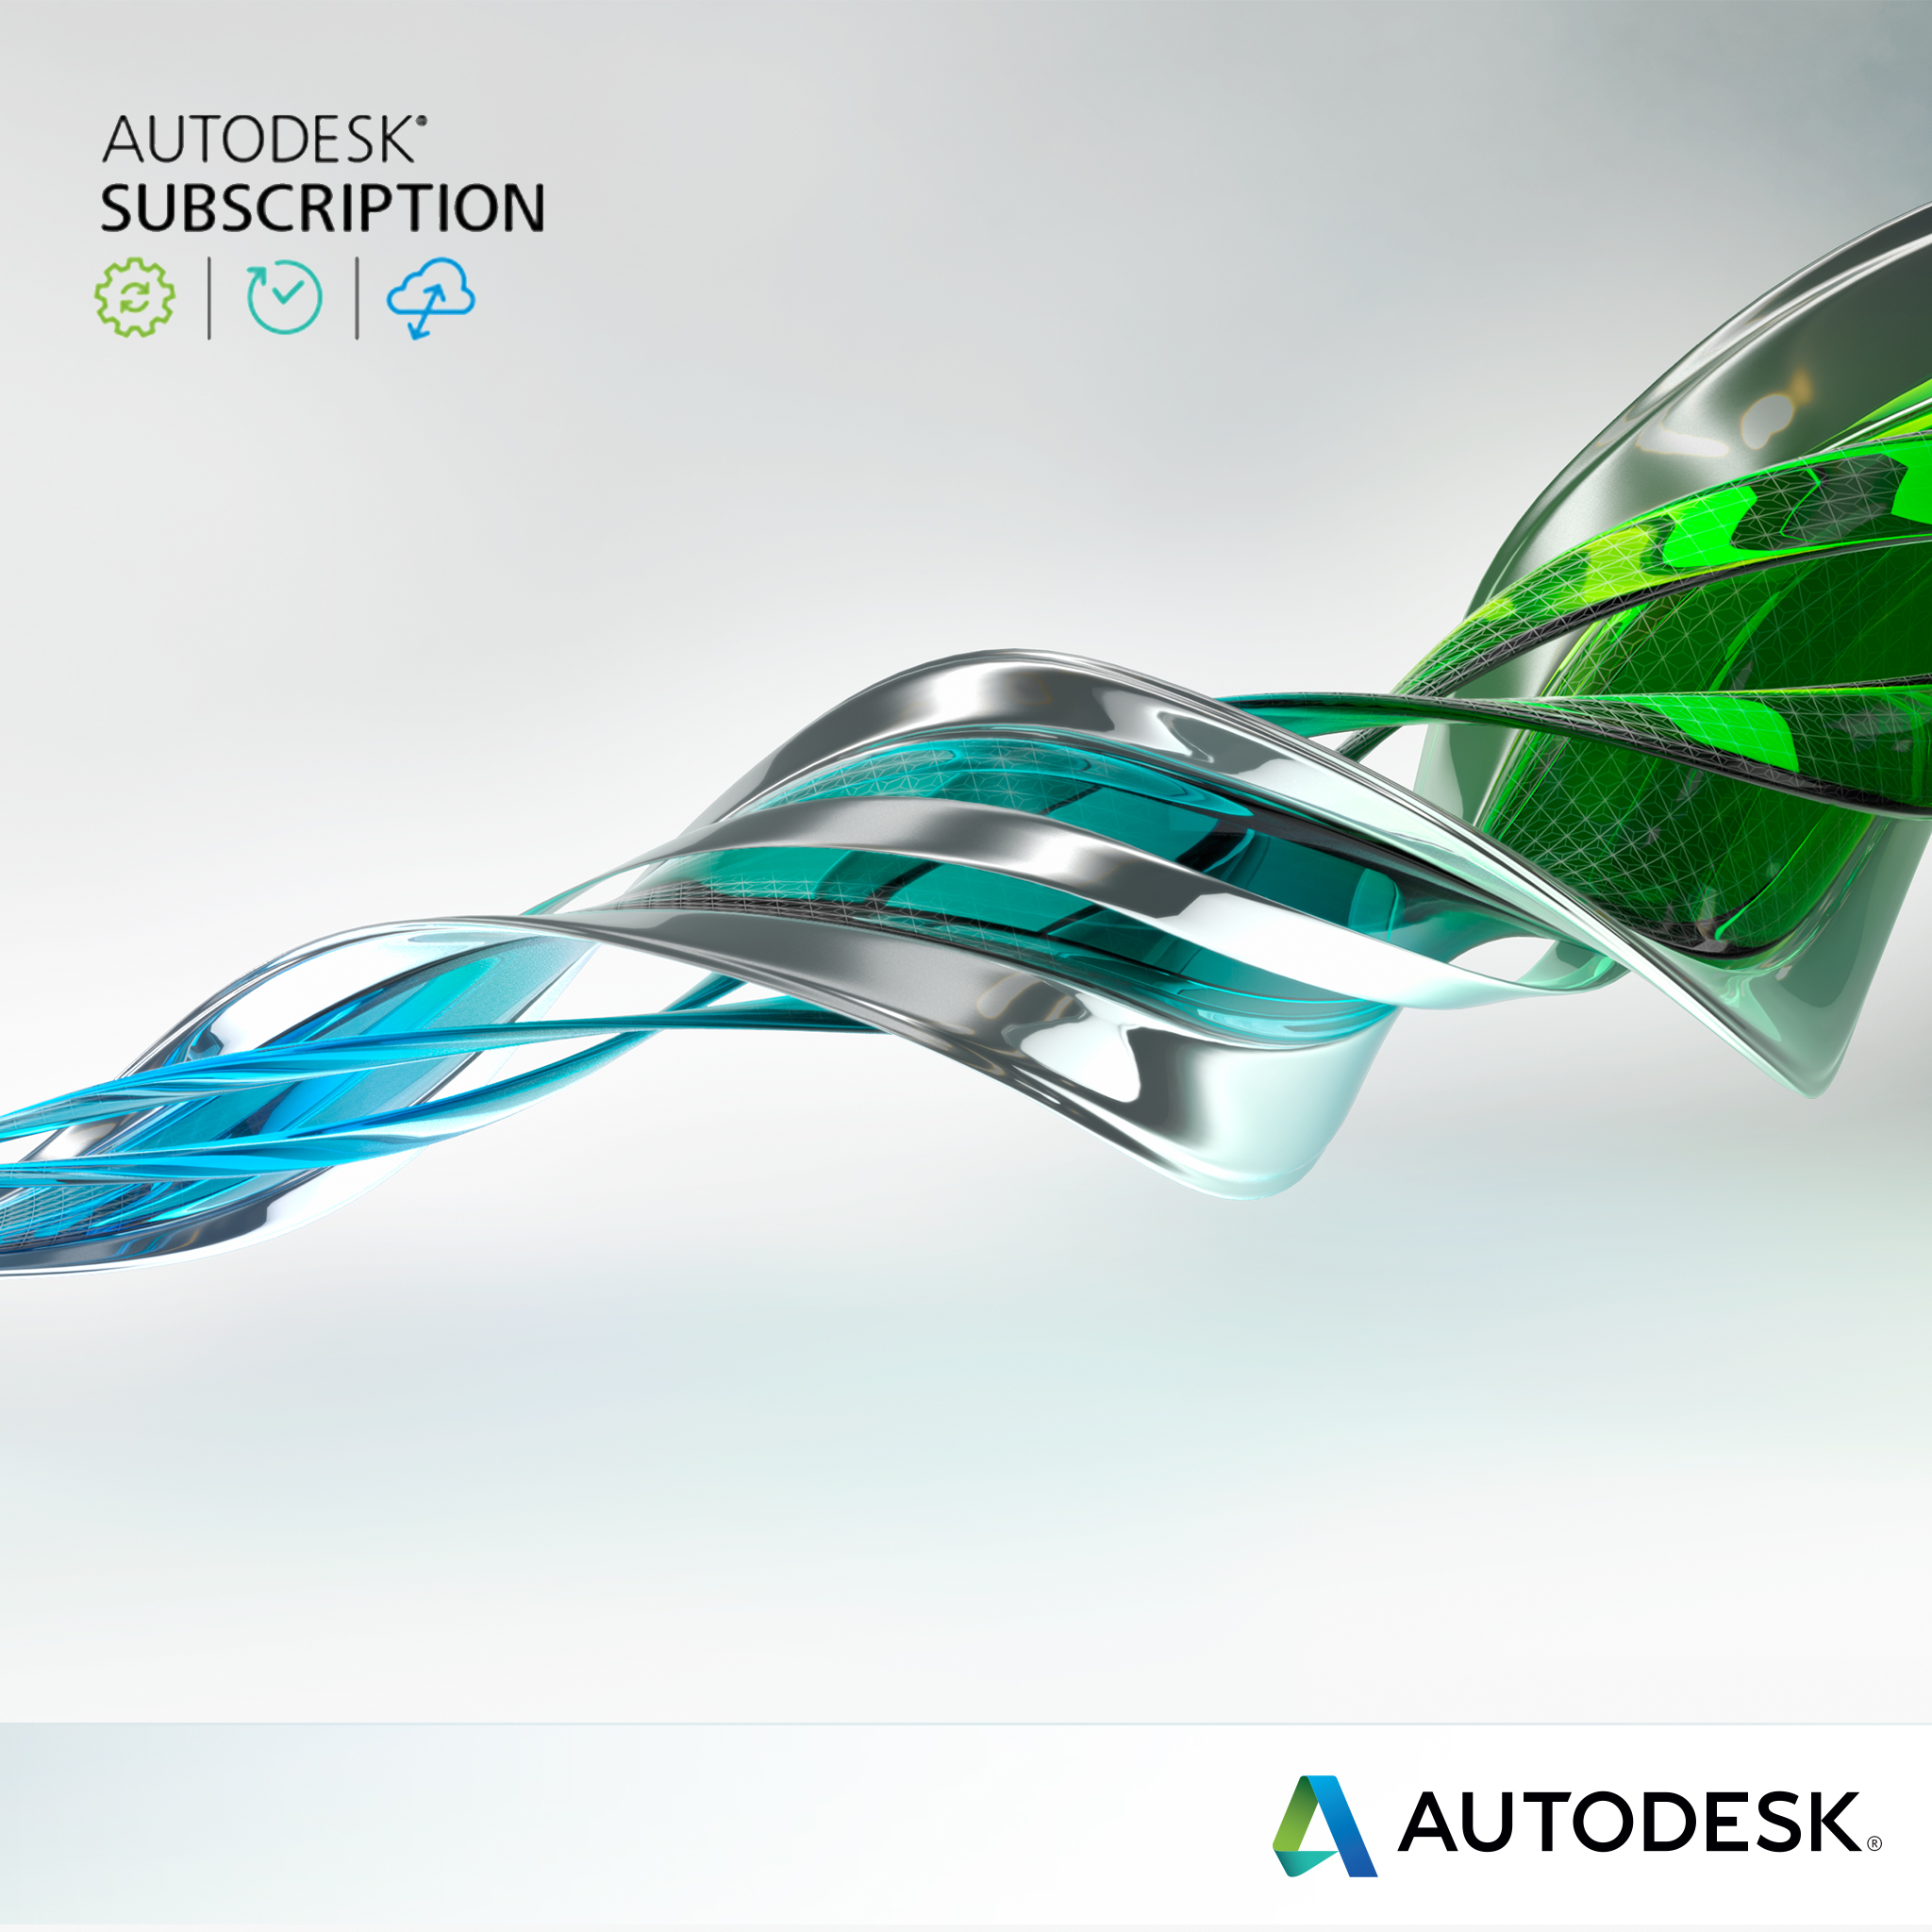 Subscribe to Autodesk badge